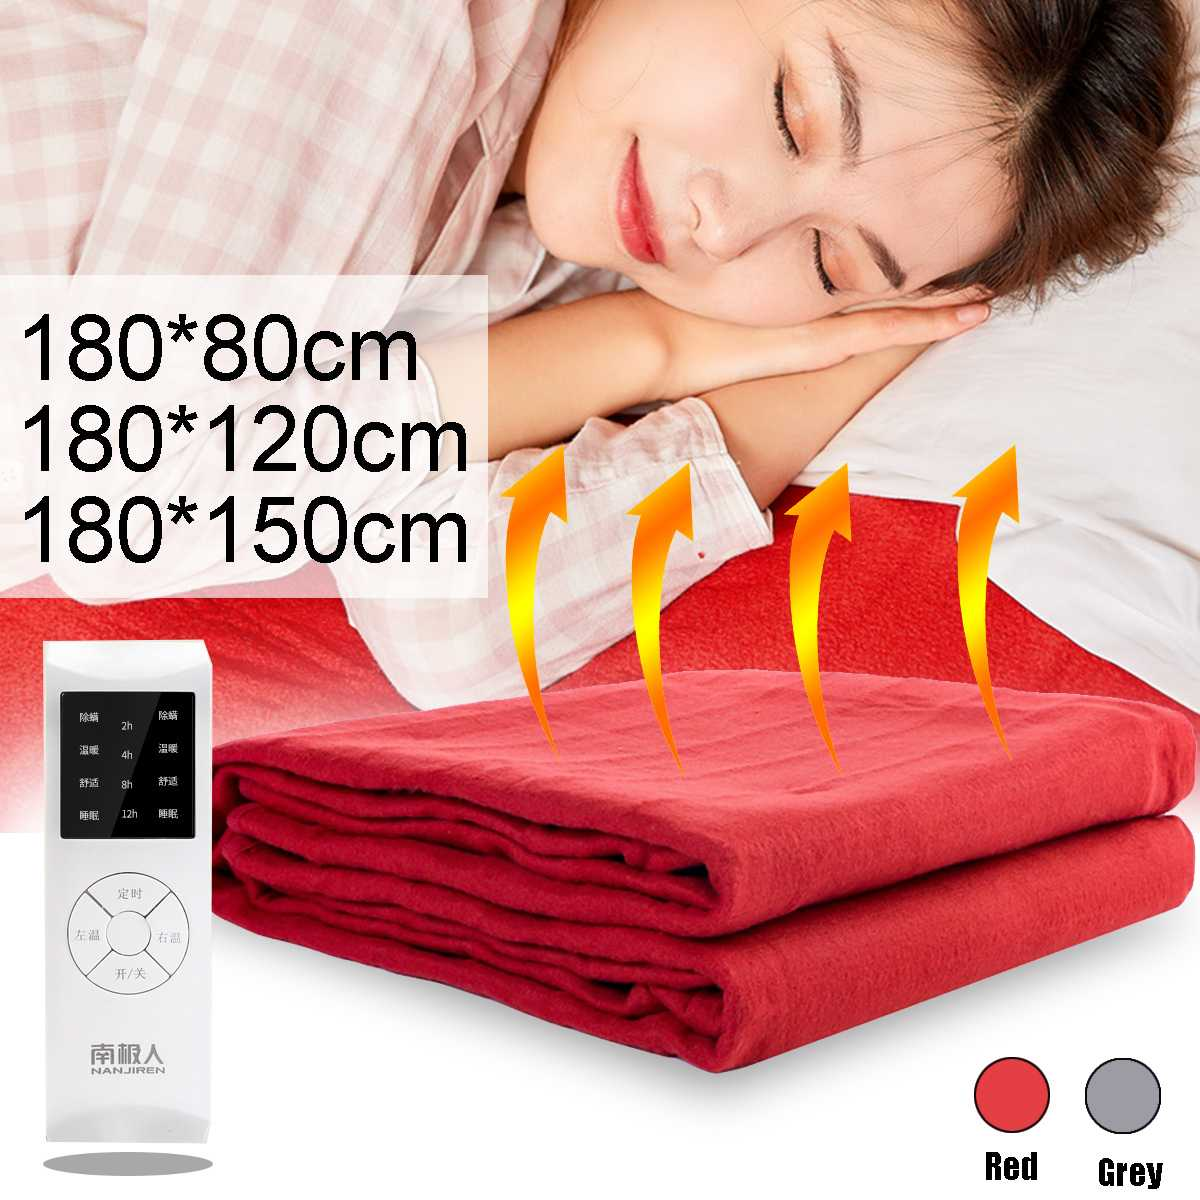 6 Gear 220V Electric Blanket Double High-temperature Electric Heated Blanket Bedroom Knee Body Warmer Bed Mattress Heaters Pad